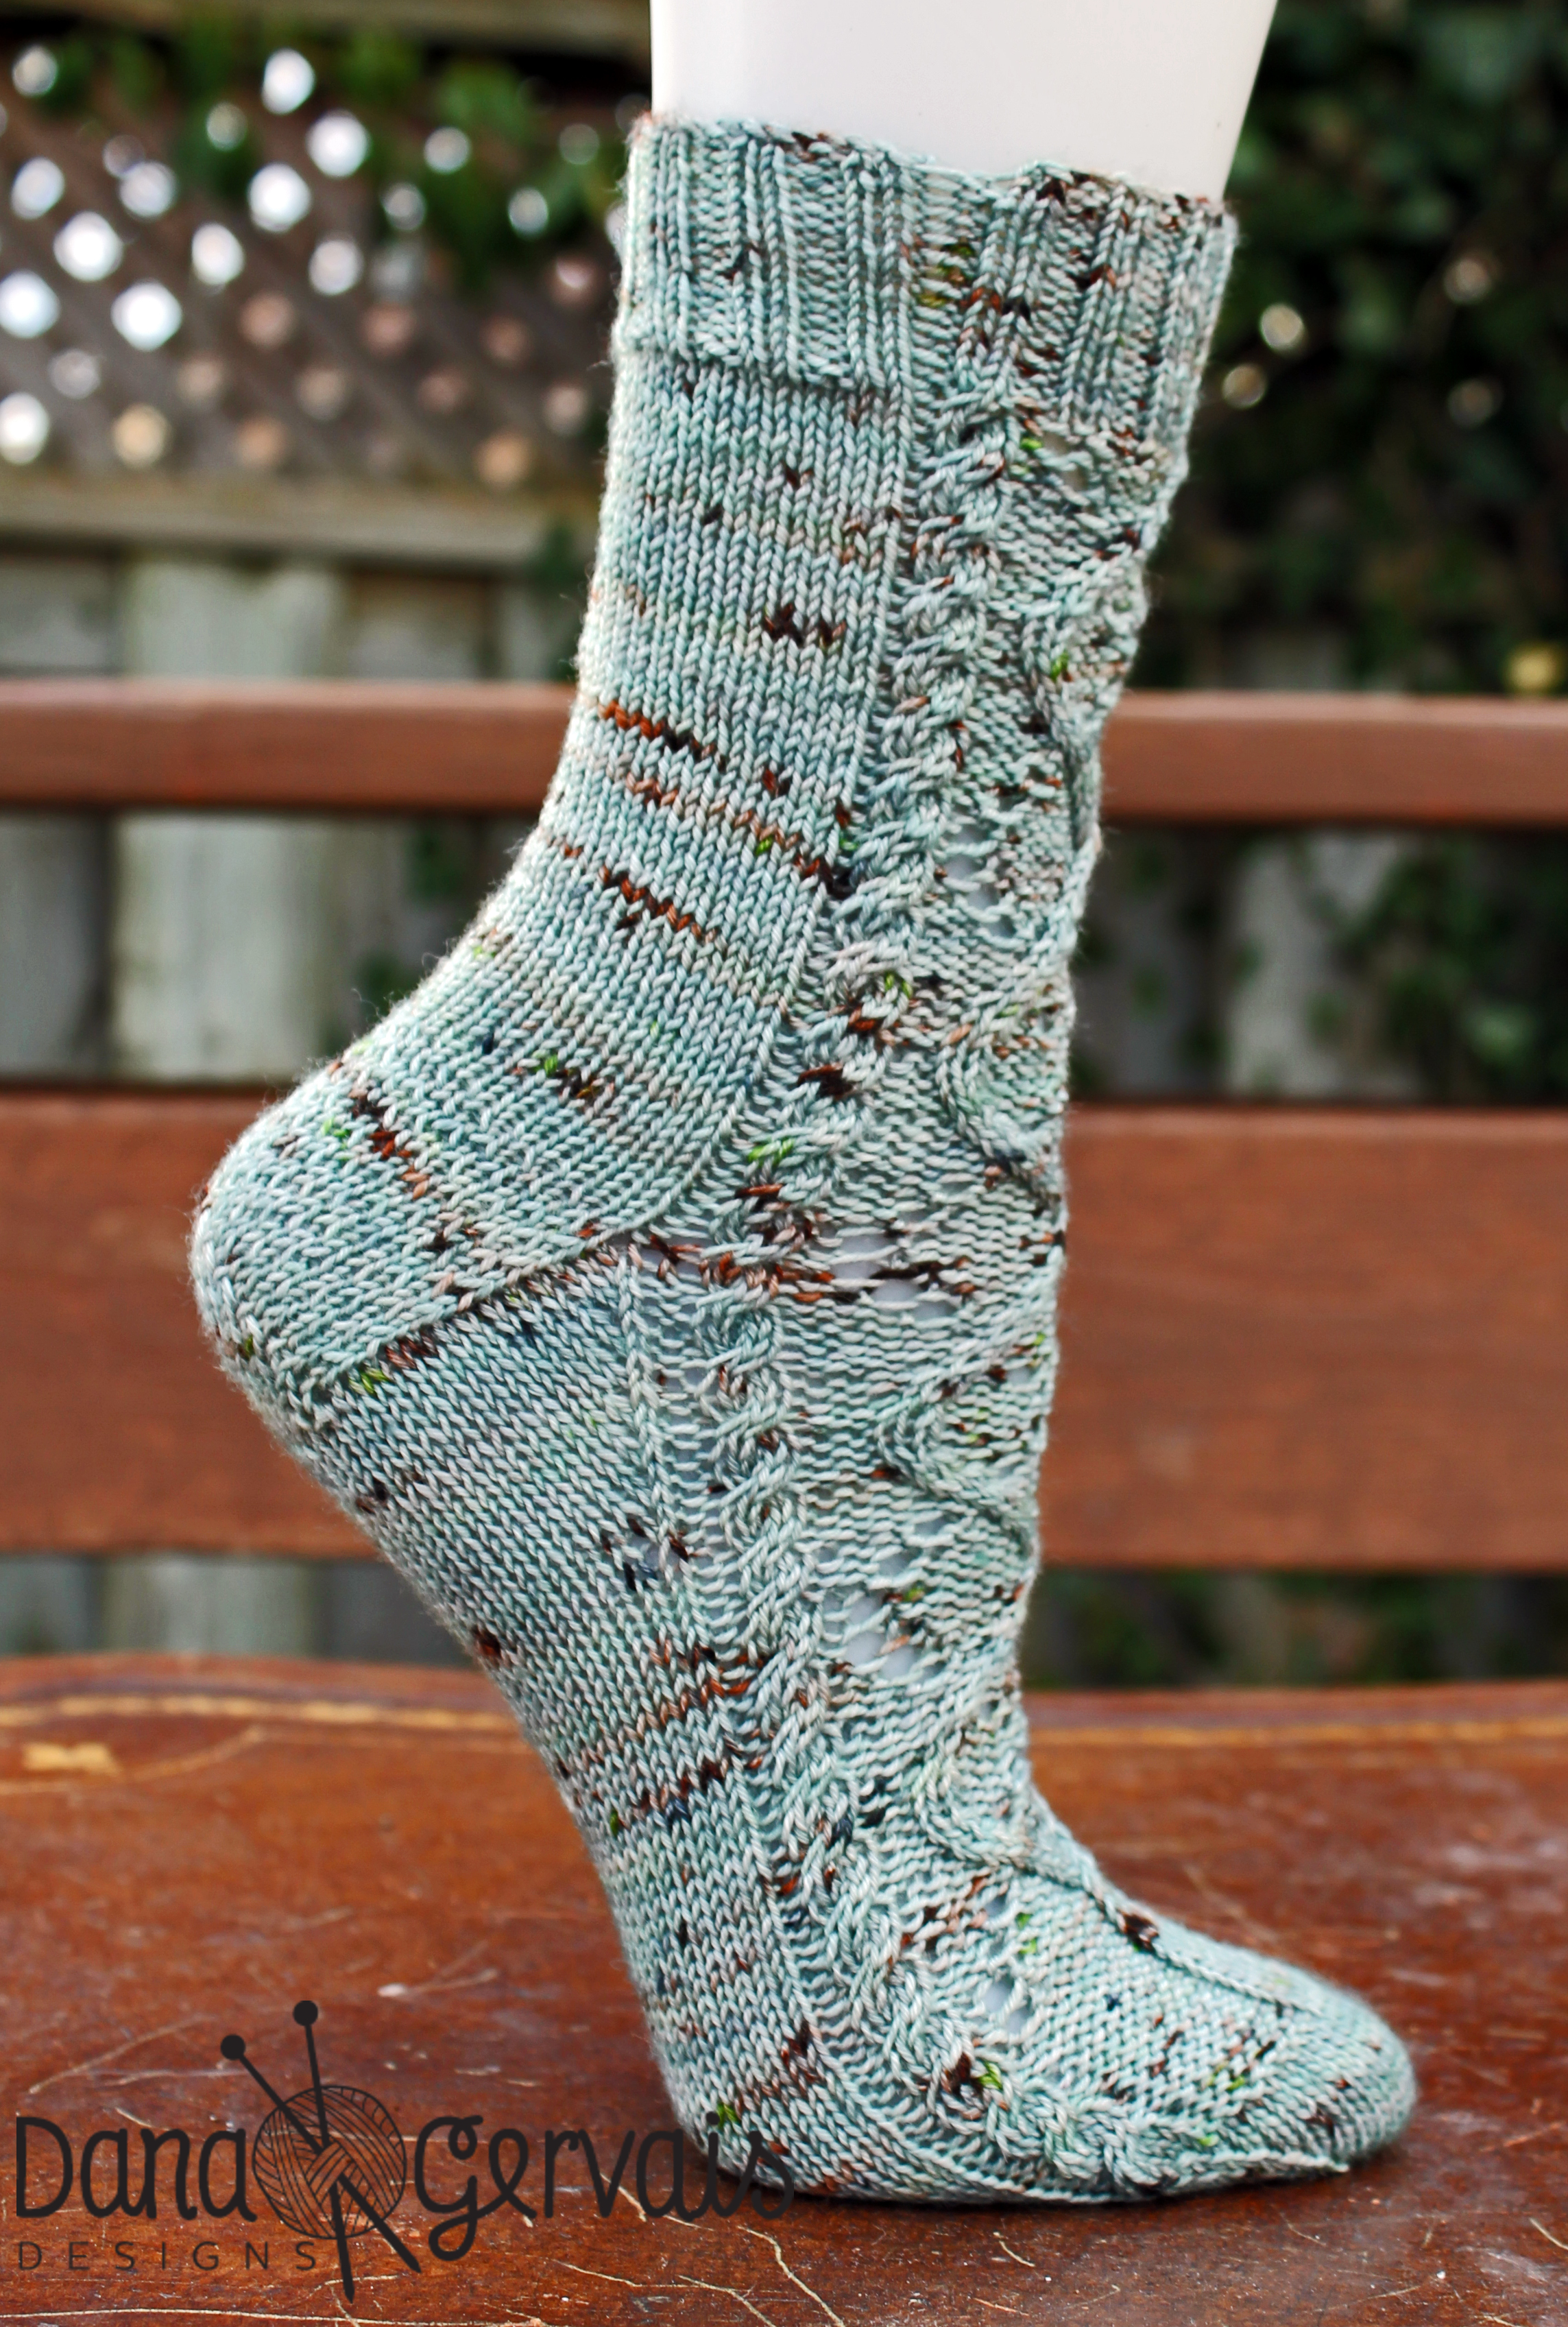 Sassenach is an example of a sock that uses heel flap construction